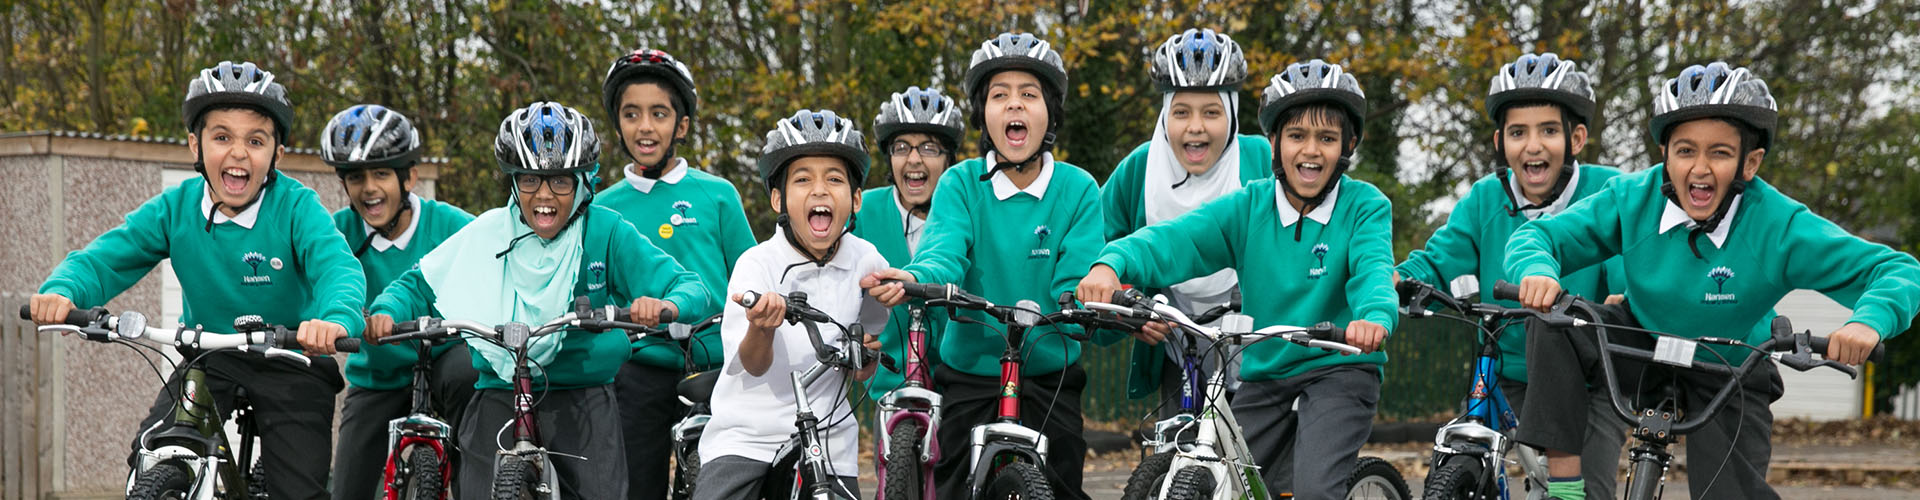 school-bike-donations.jpg